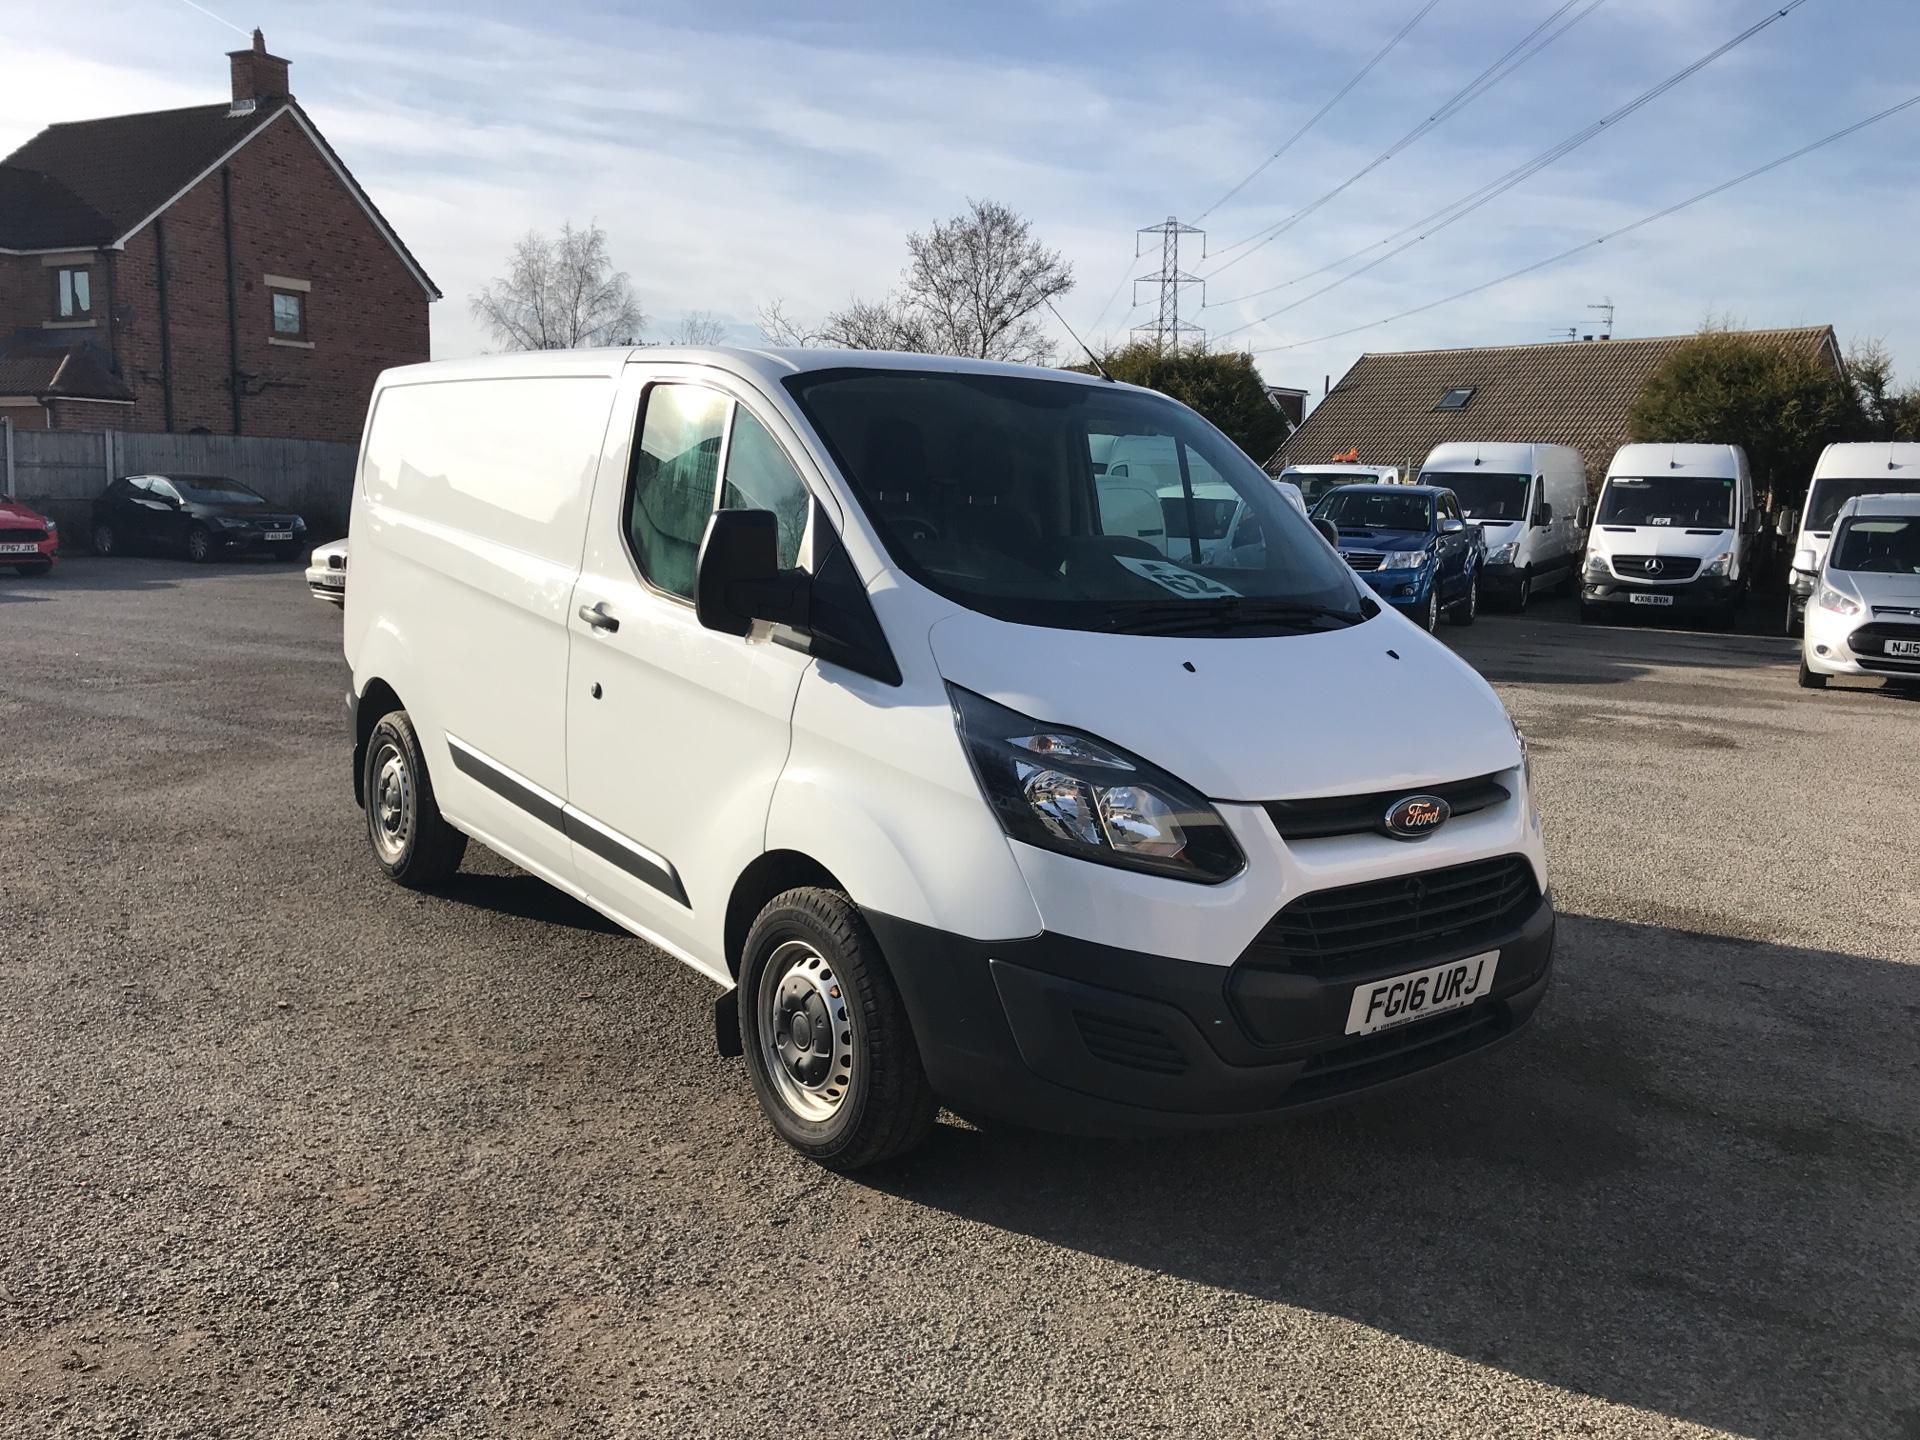 48d77f3e1a 2016 Ford Transit Custom 290 L1 DIESEL FWD 2.2 TDCI 100PS LOW ROOF VAN EURO  5